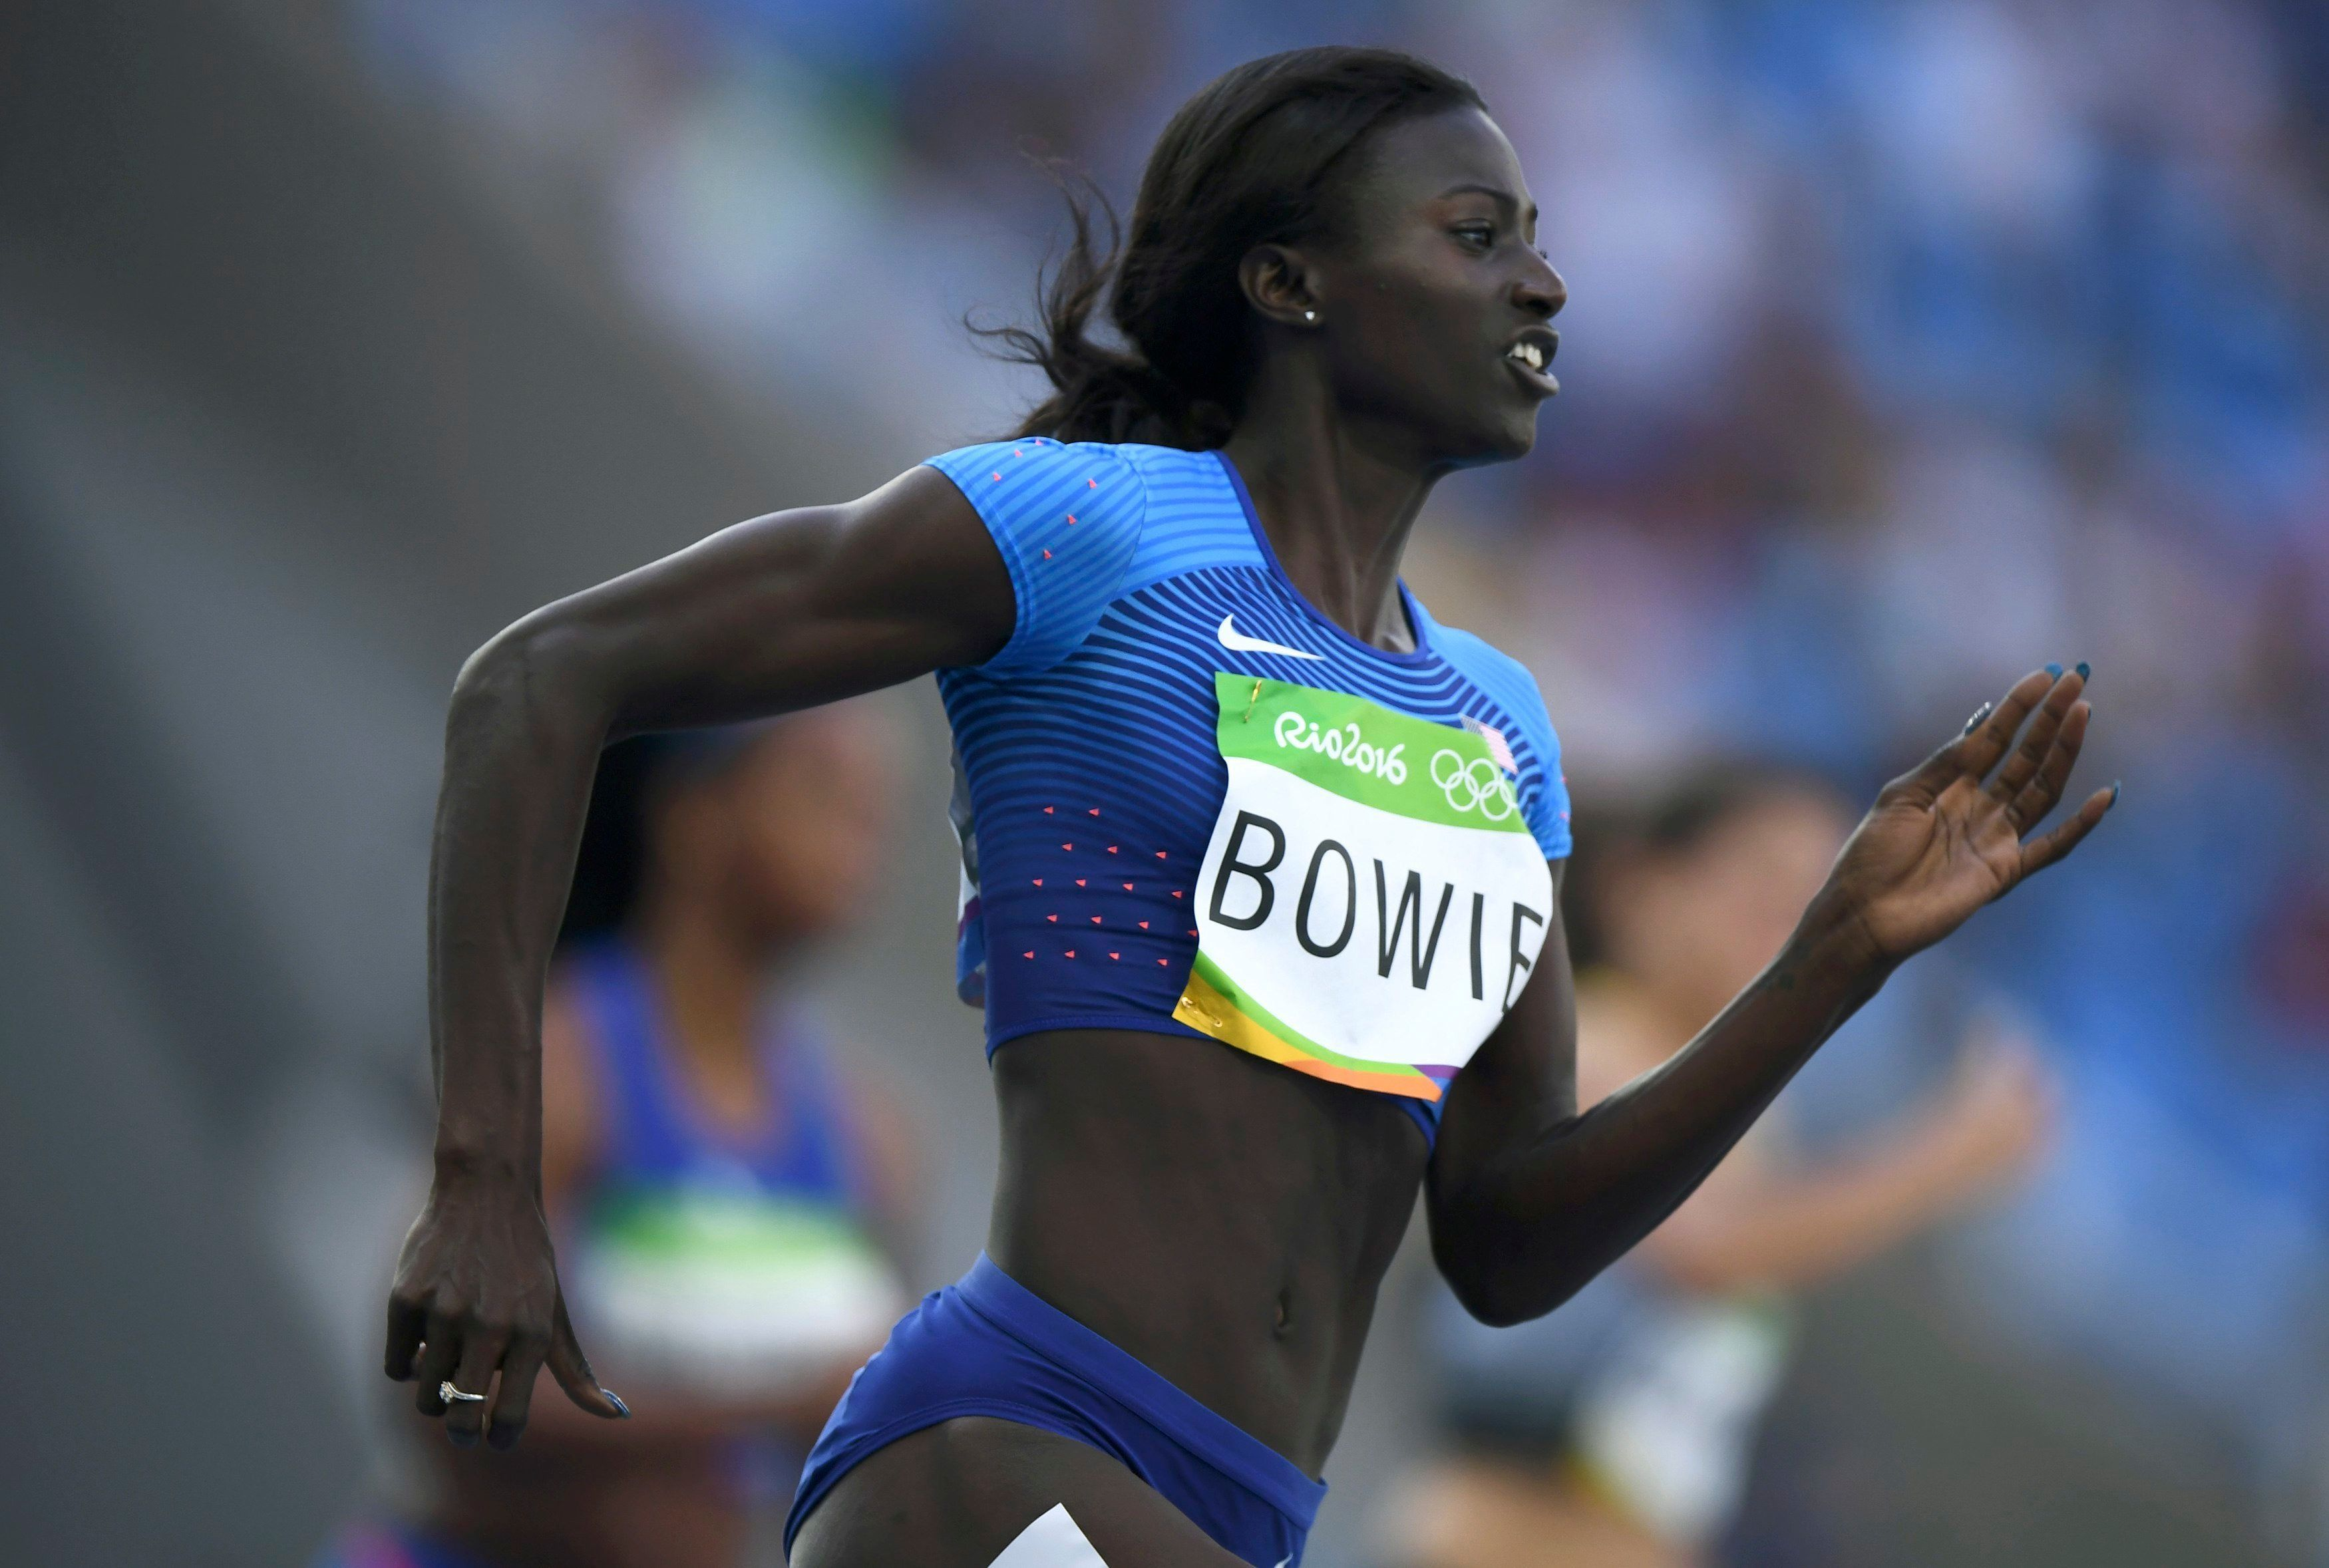 Tori Bowie could only place third during the 200m final.